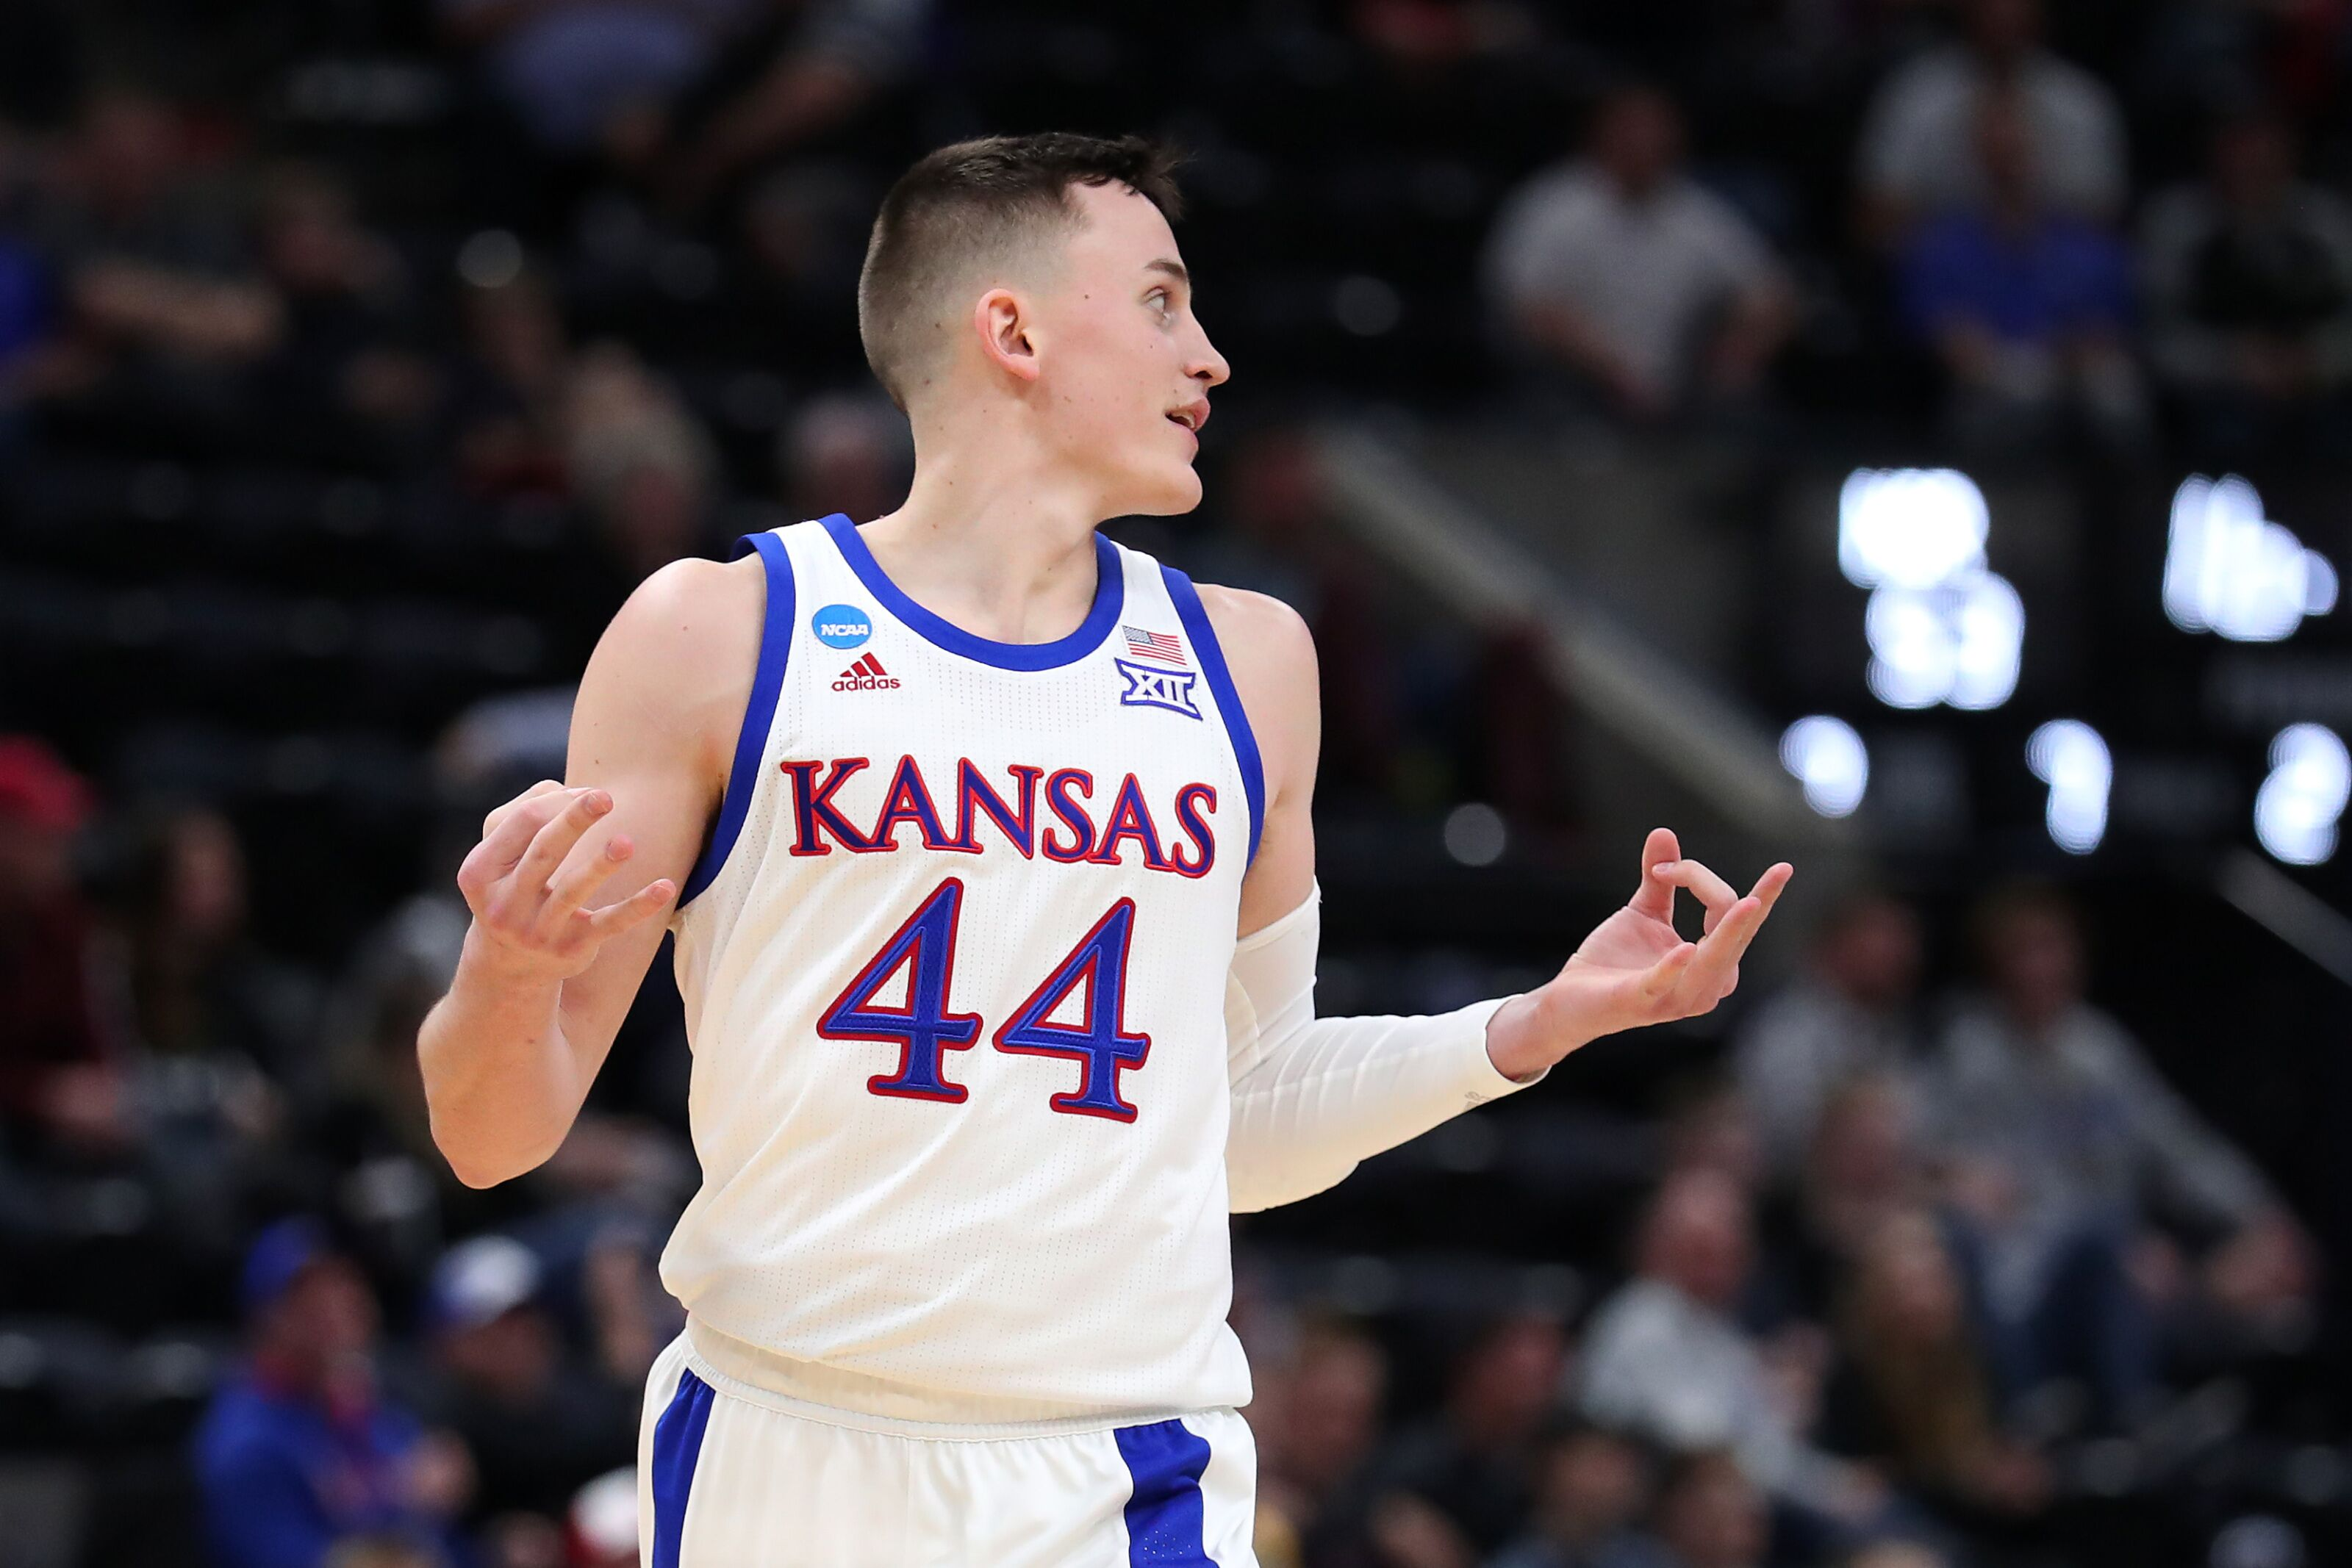 Kansas basketball: In a loaded frontcourt, where does Mitch lightfoot fit?